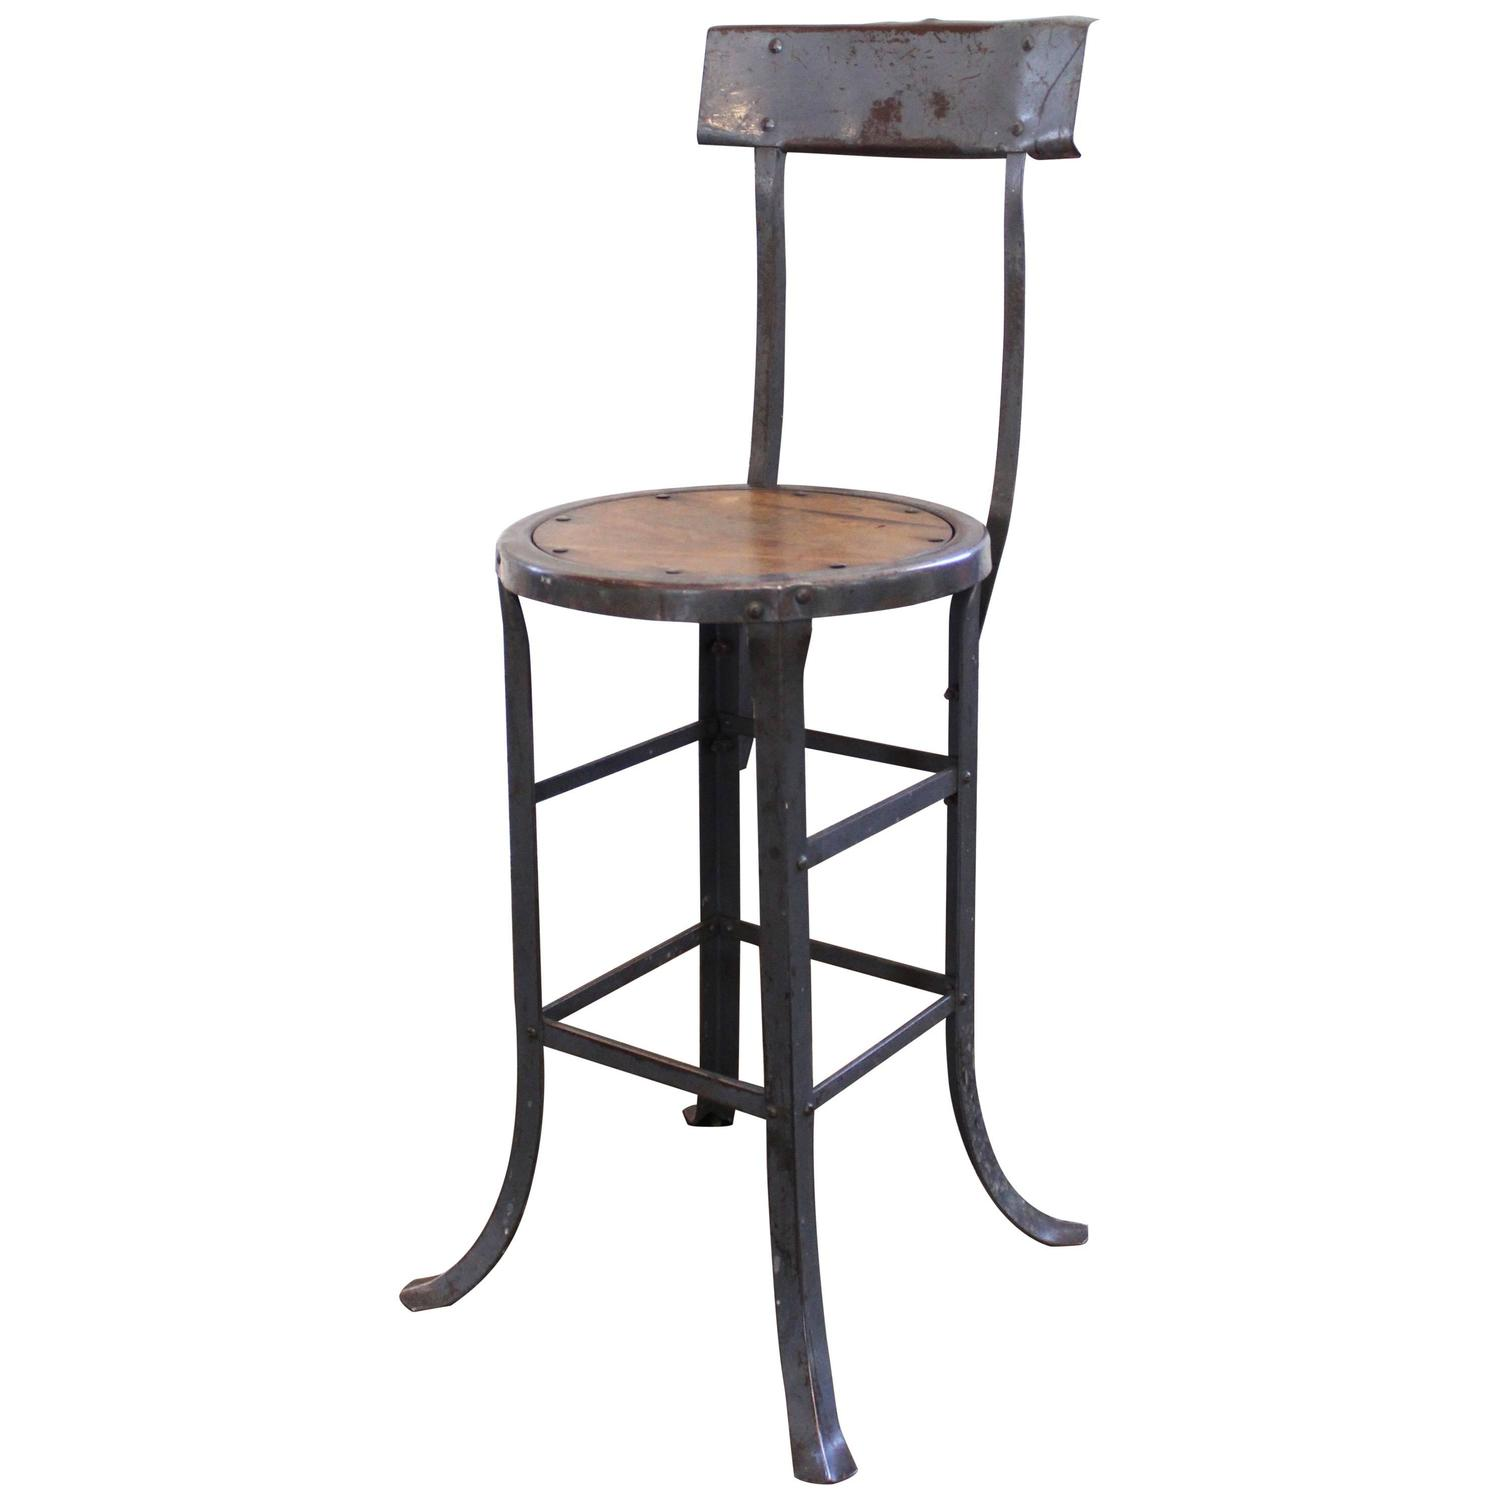 Vintage Industrial Rustic Wood And Metal Bar Kitchen Island Stool With Back For Sale At 1stdibs